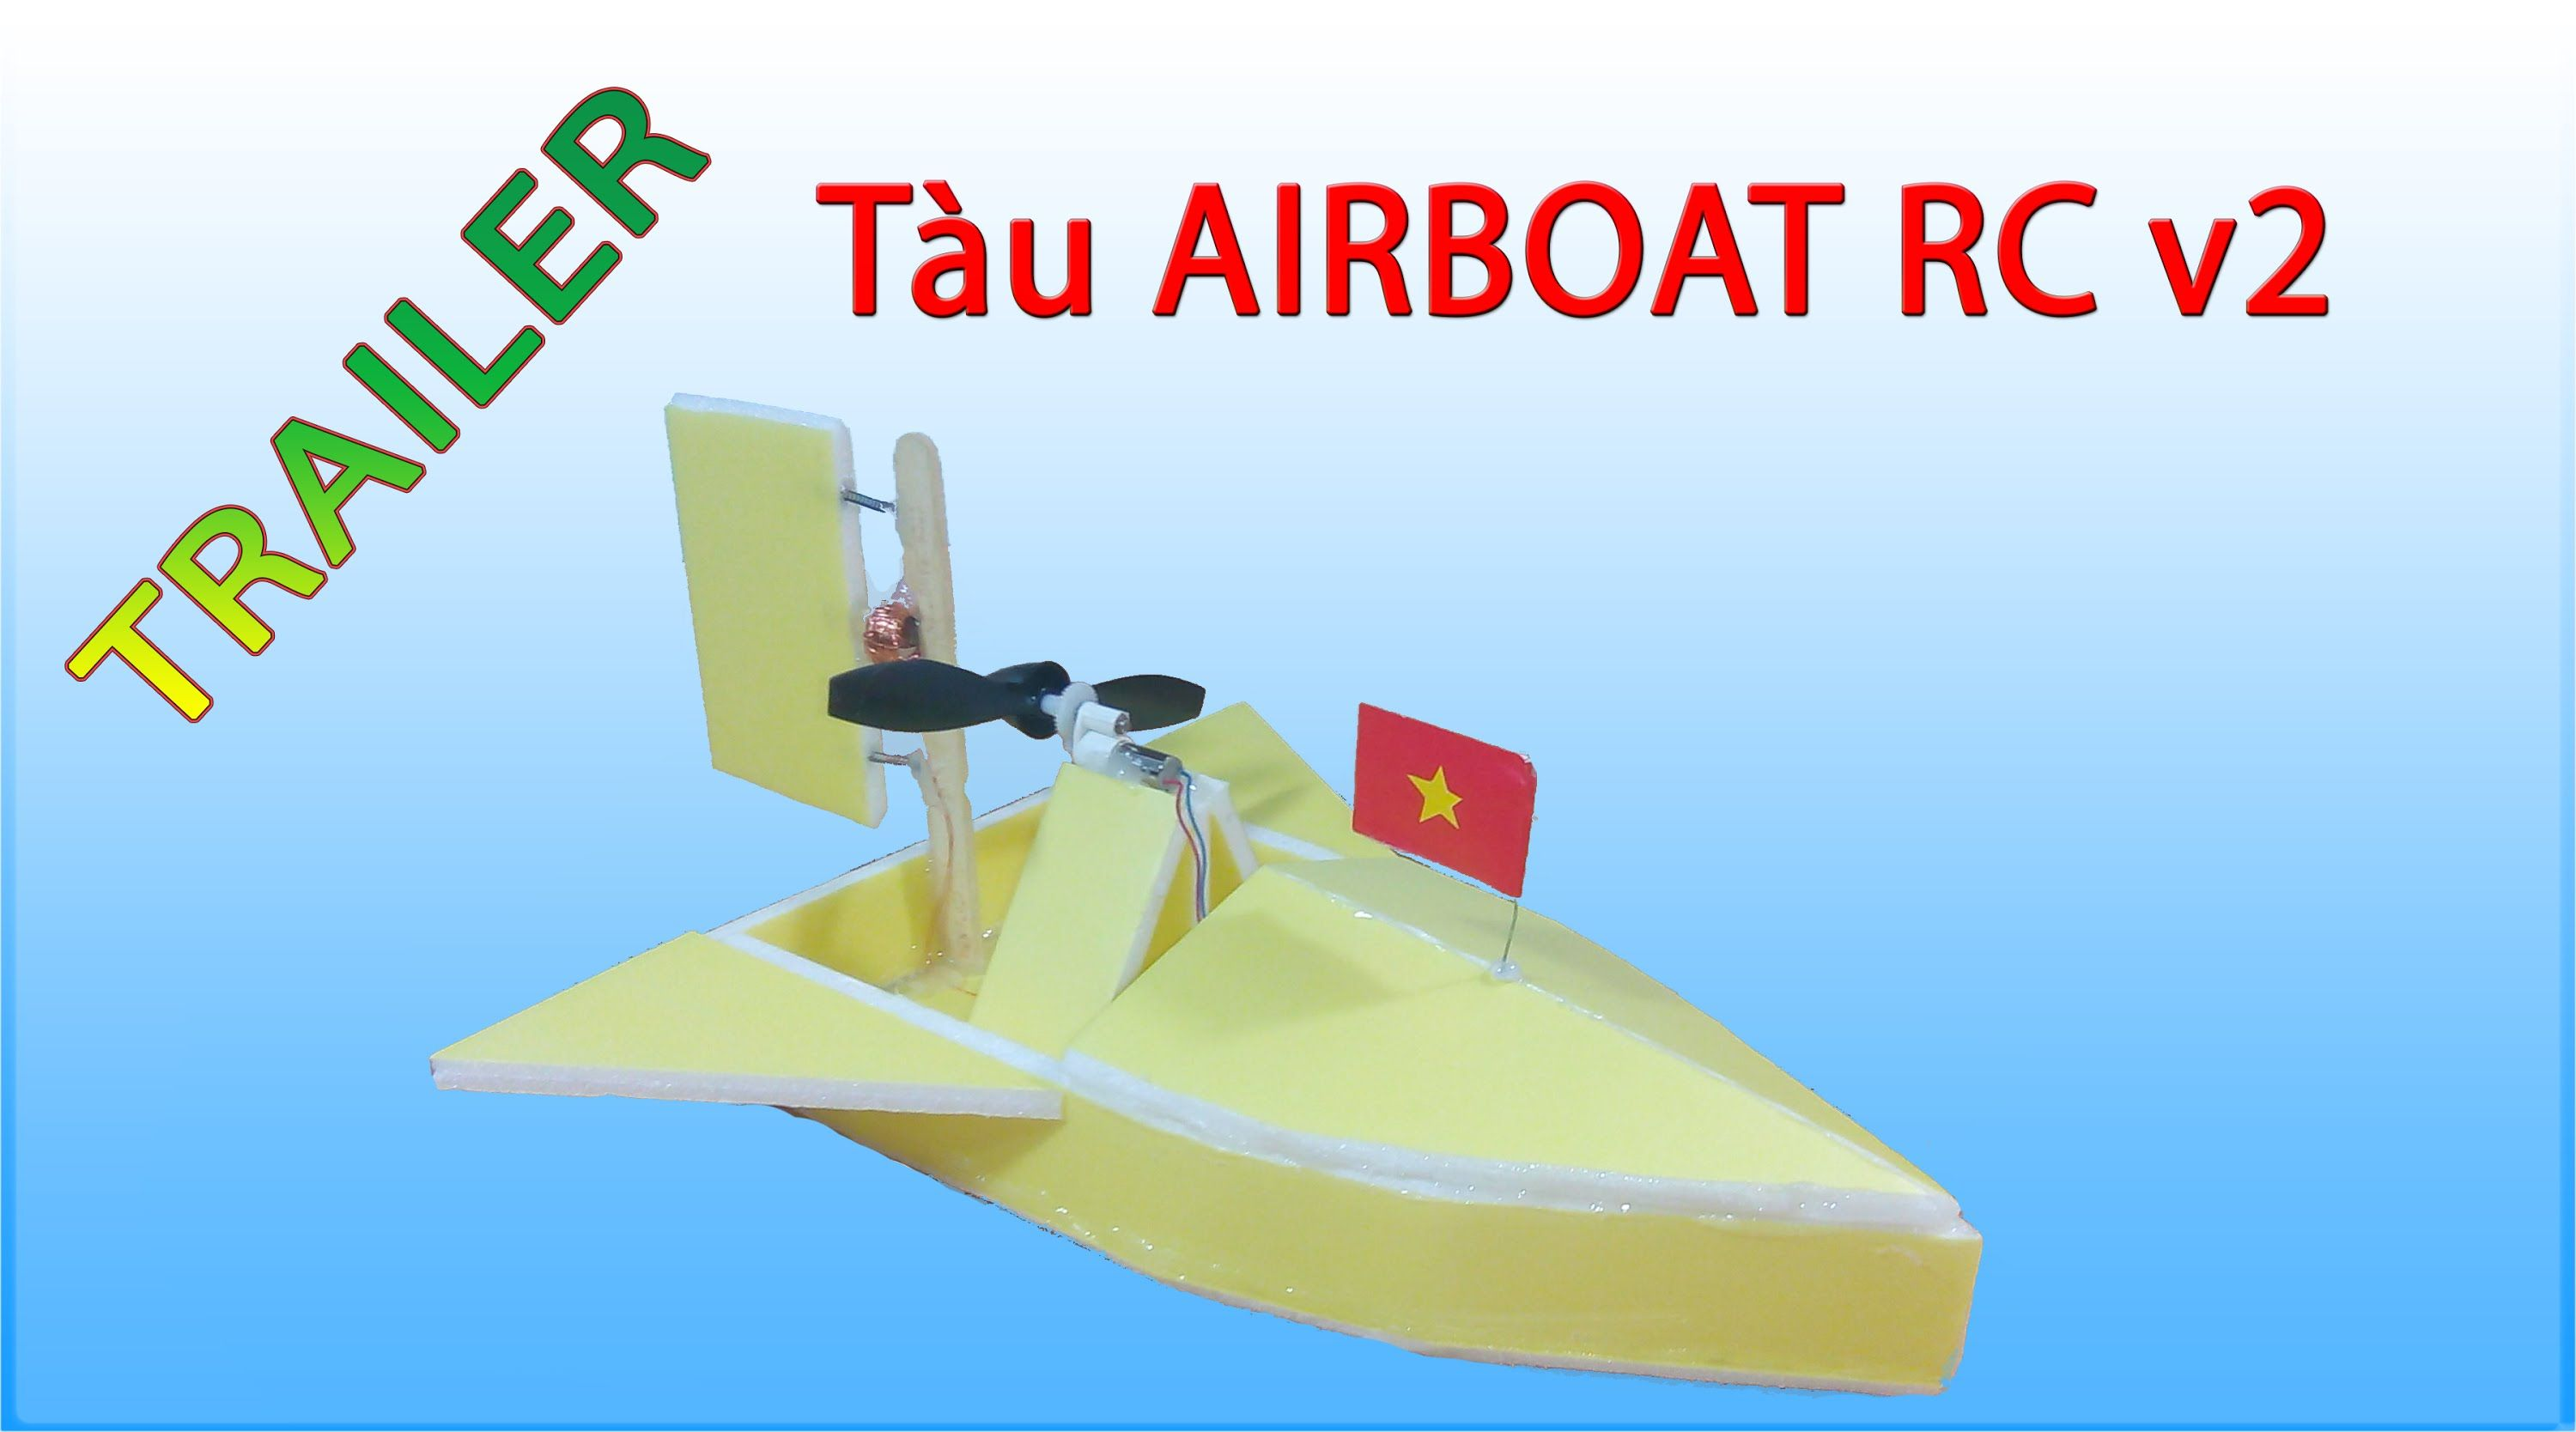 Trailer t lm tu airboat rc mini v2 by kst kenhsangtao trailer t lm tu airboat rc mini v2 by kst kenhsangtao sciox Image collections